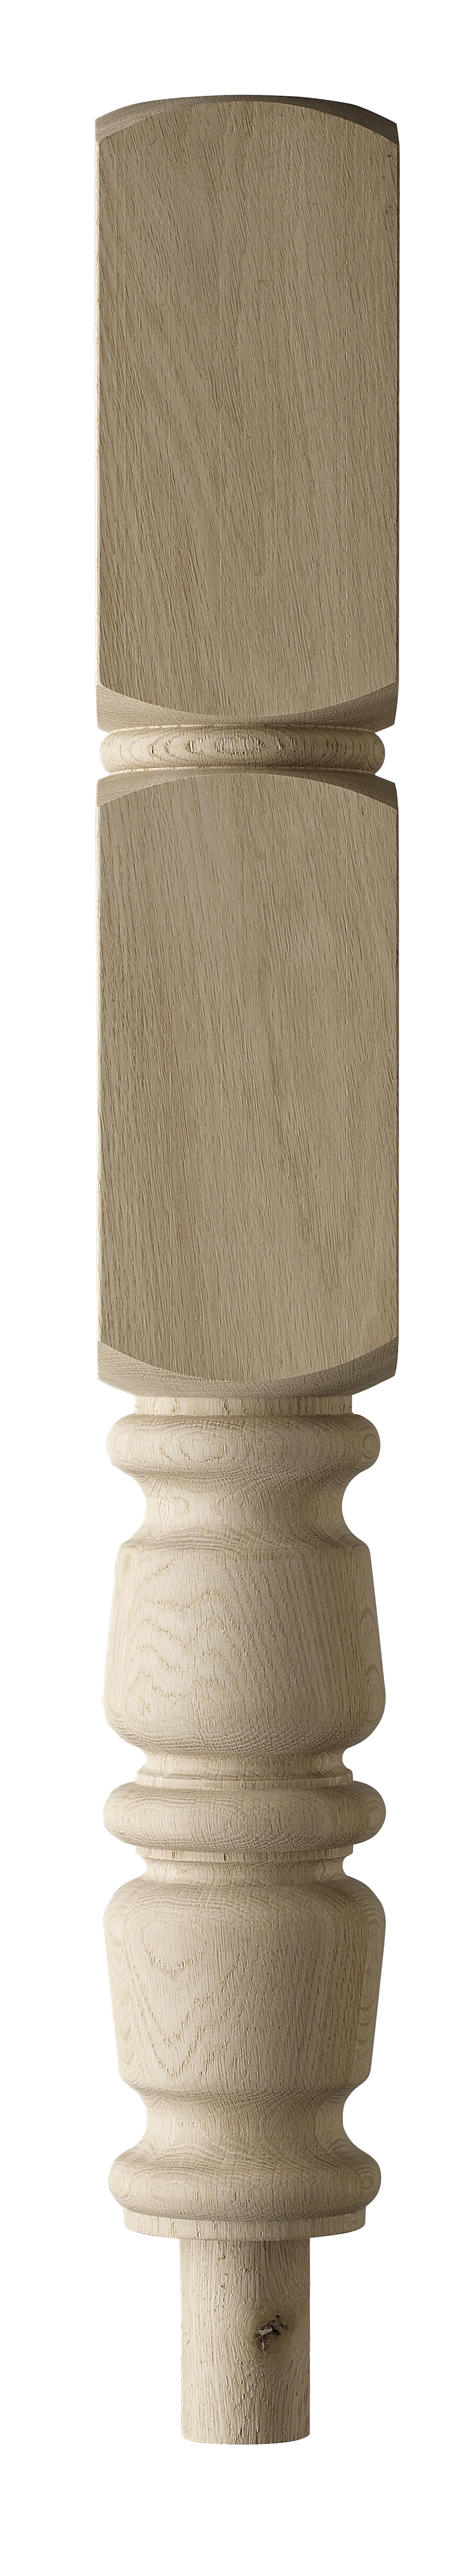 1 Oak Arlington Intermediate Newel